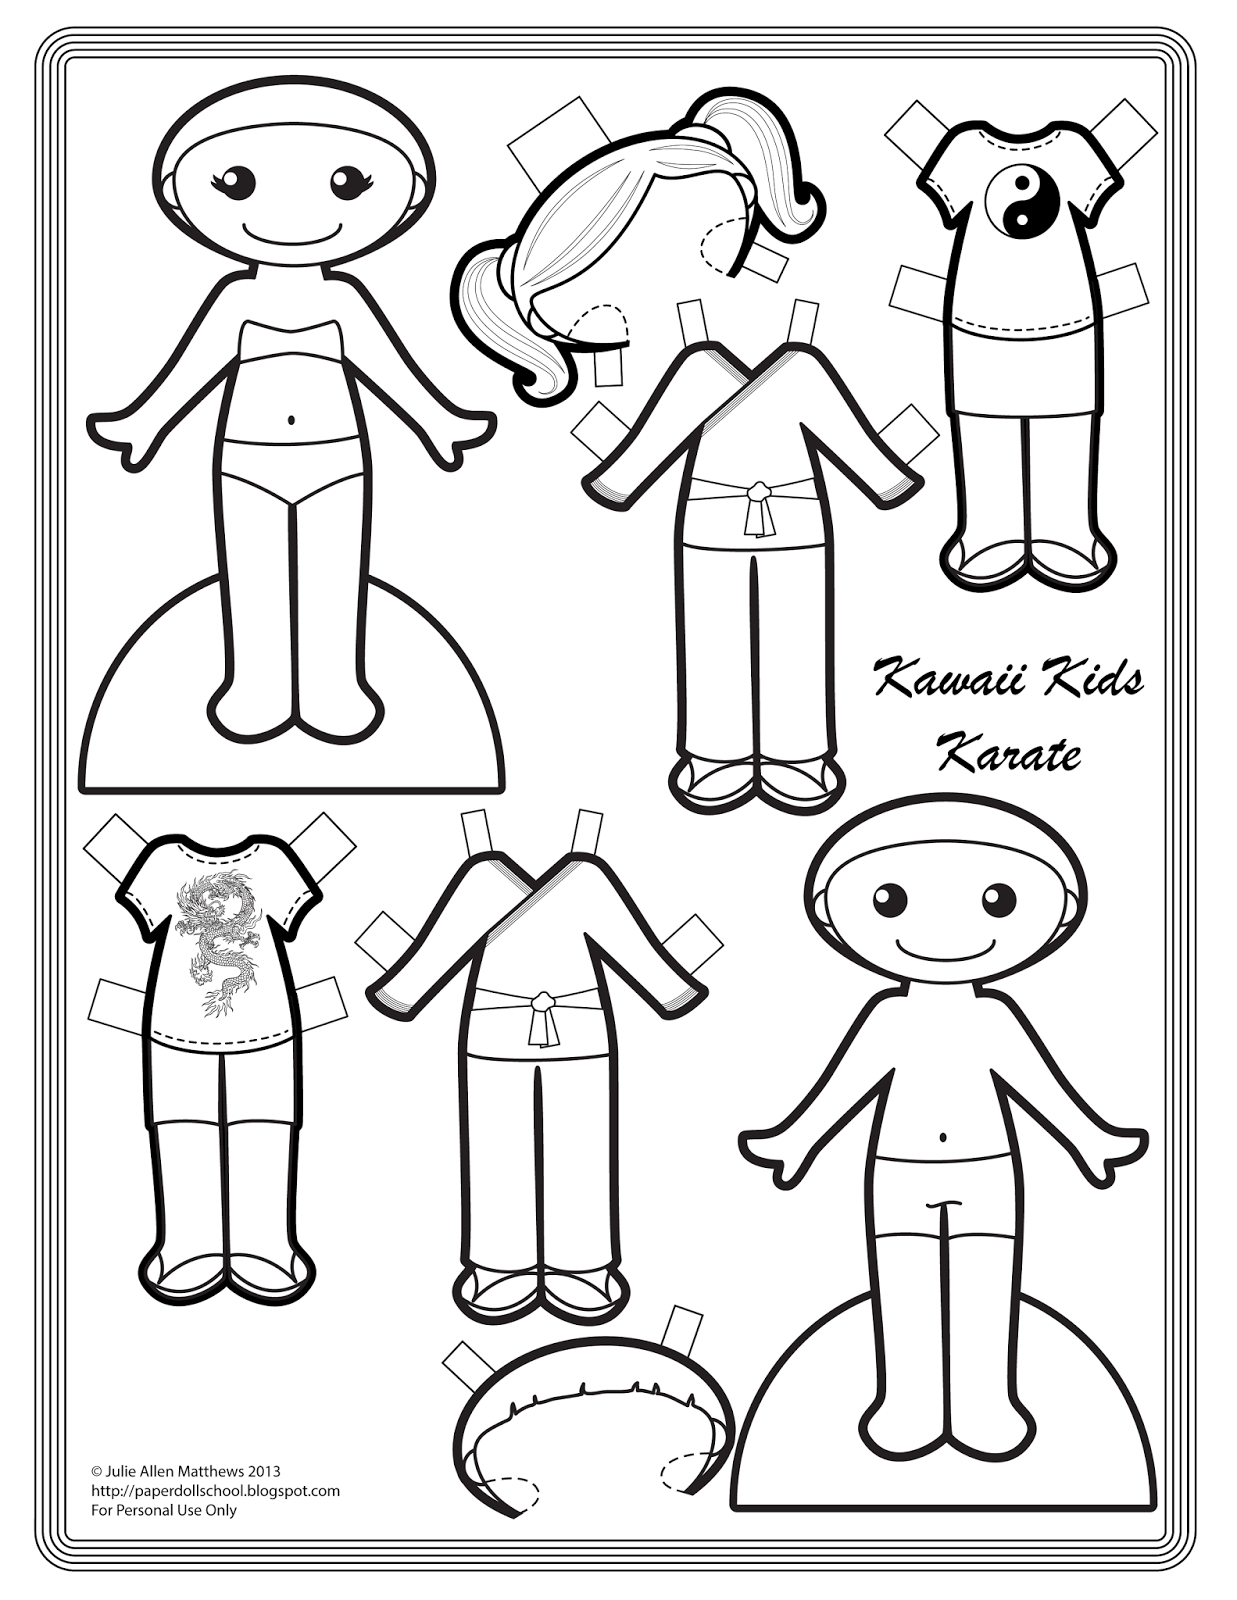 Black And White Kawaii Kids Karate Paper Doll To Color